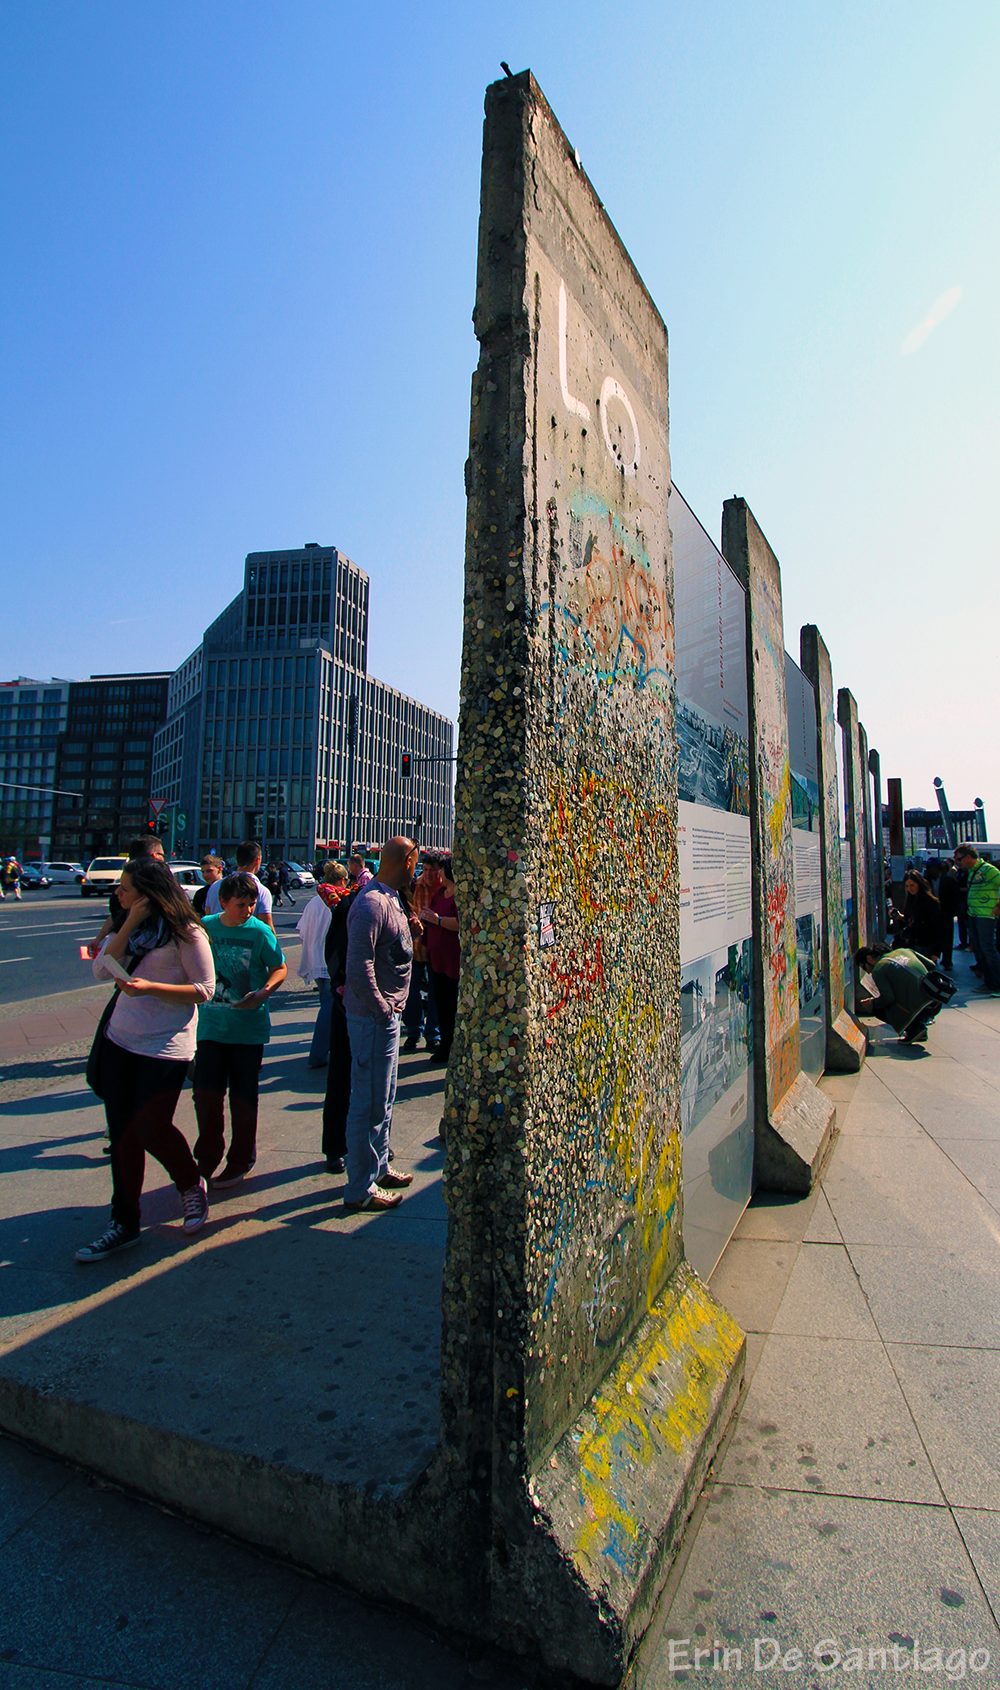 Portions of the Berlin Wall still stand in Potsdamer Platz